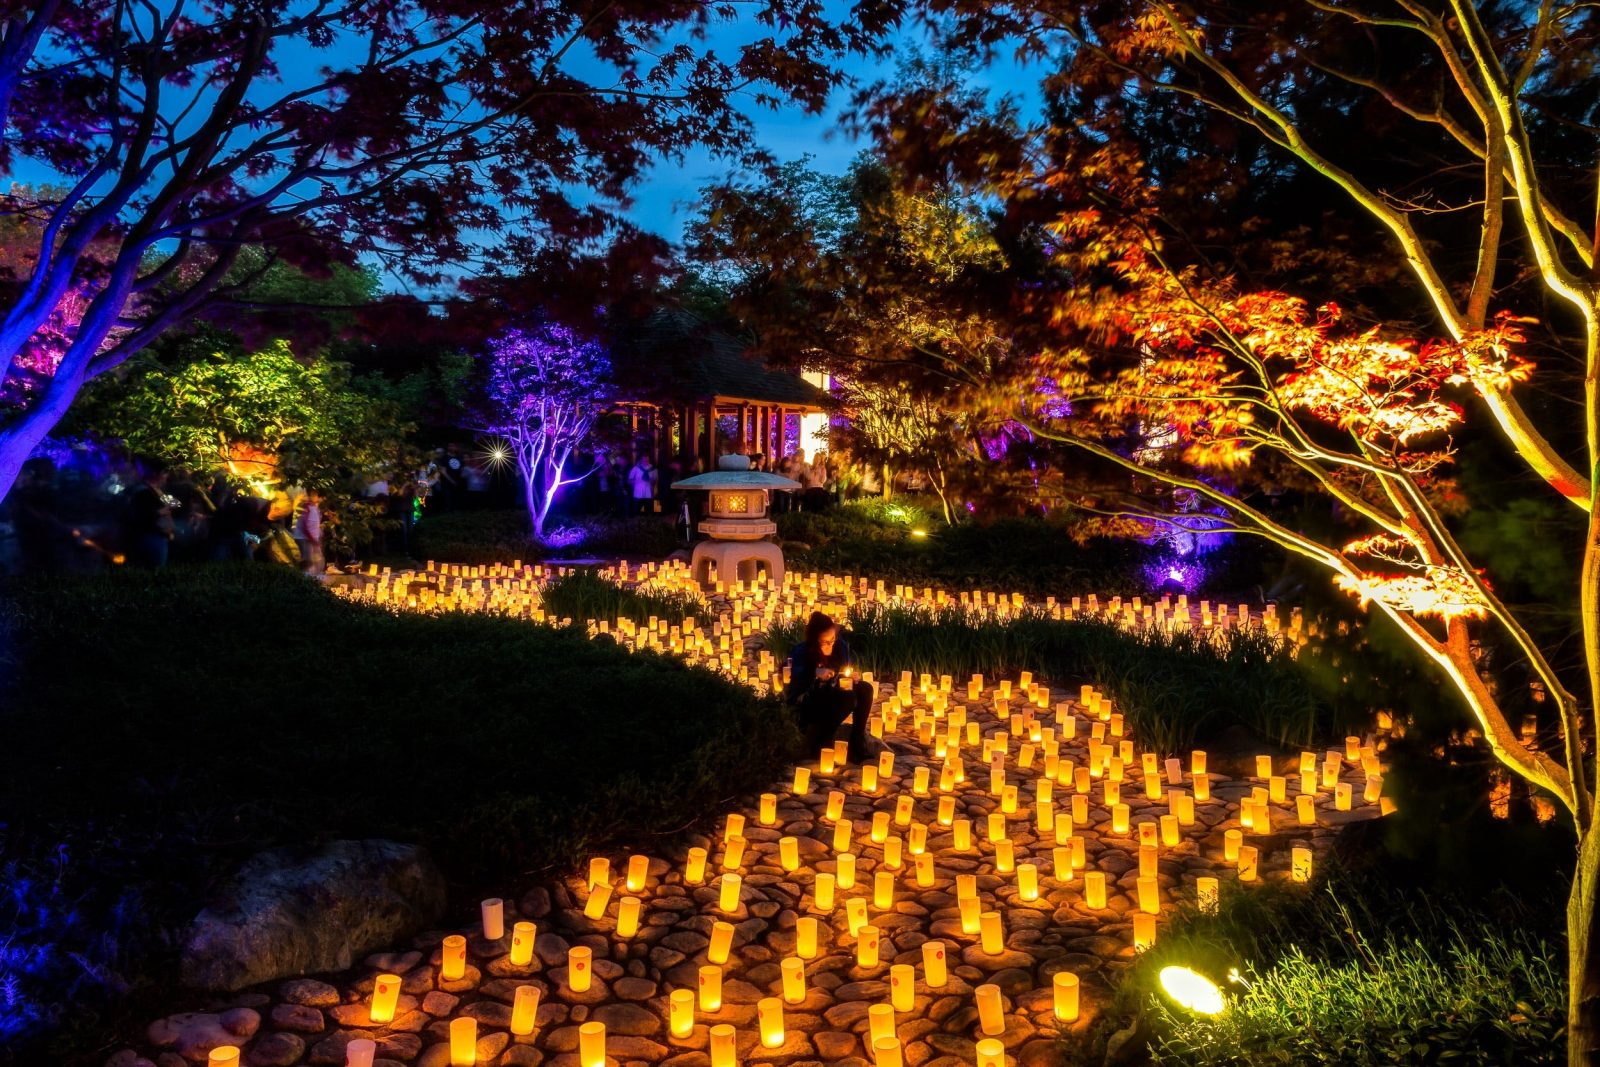 Shimmering paths of candles light up the Canberra Nara Peace Park.